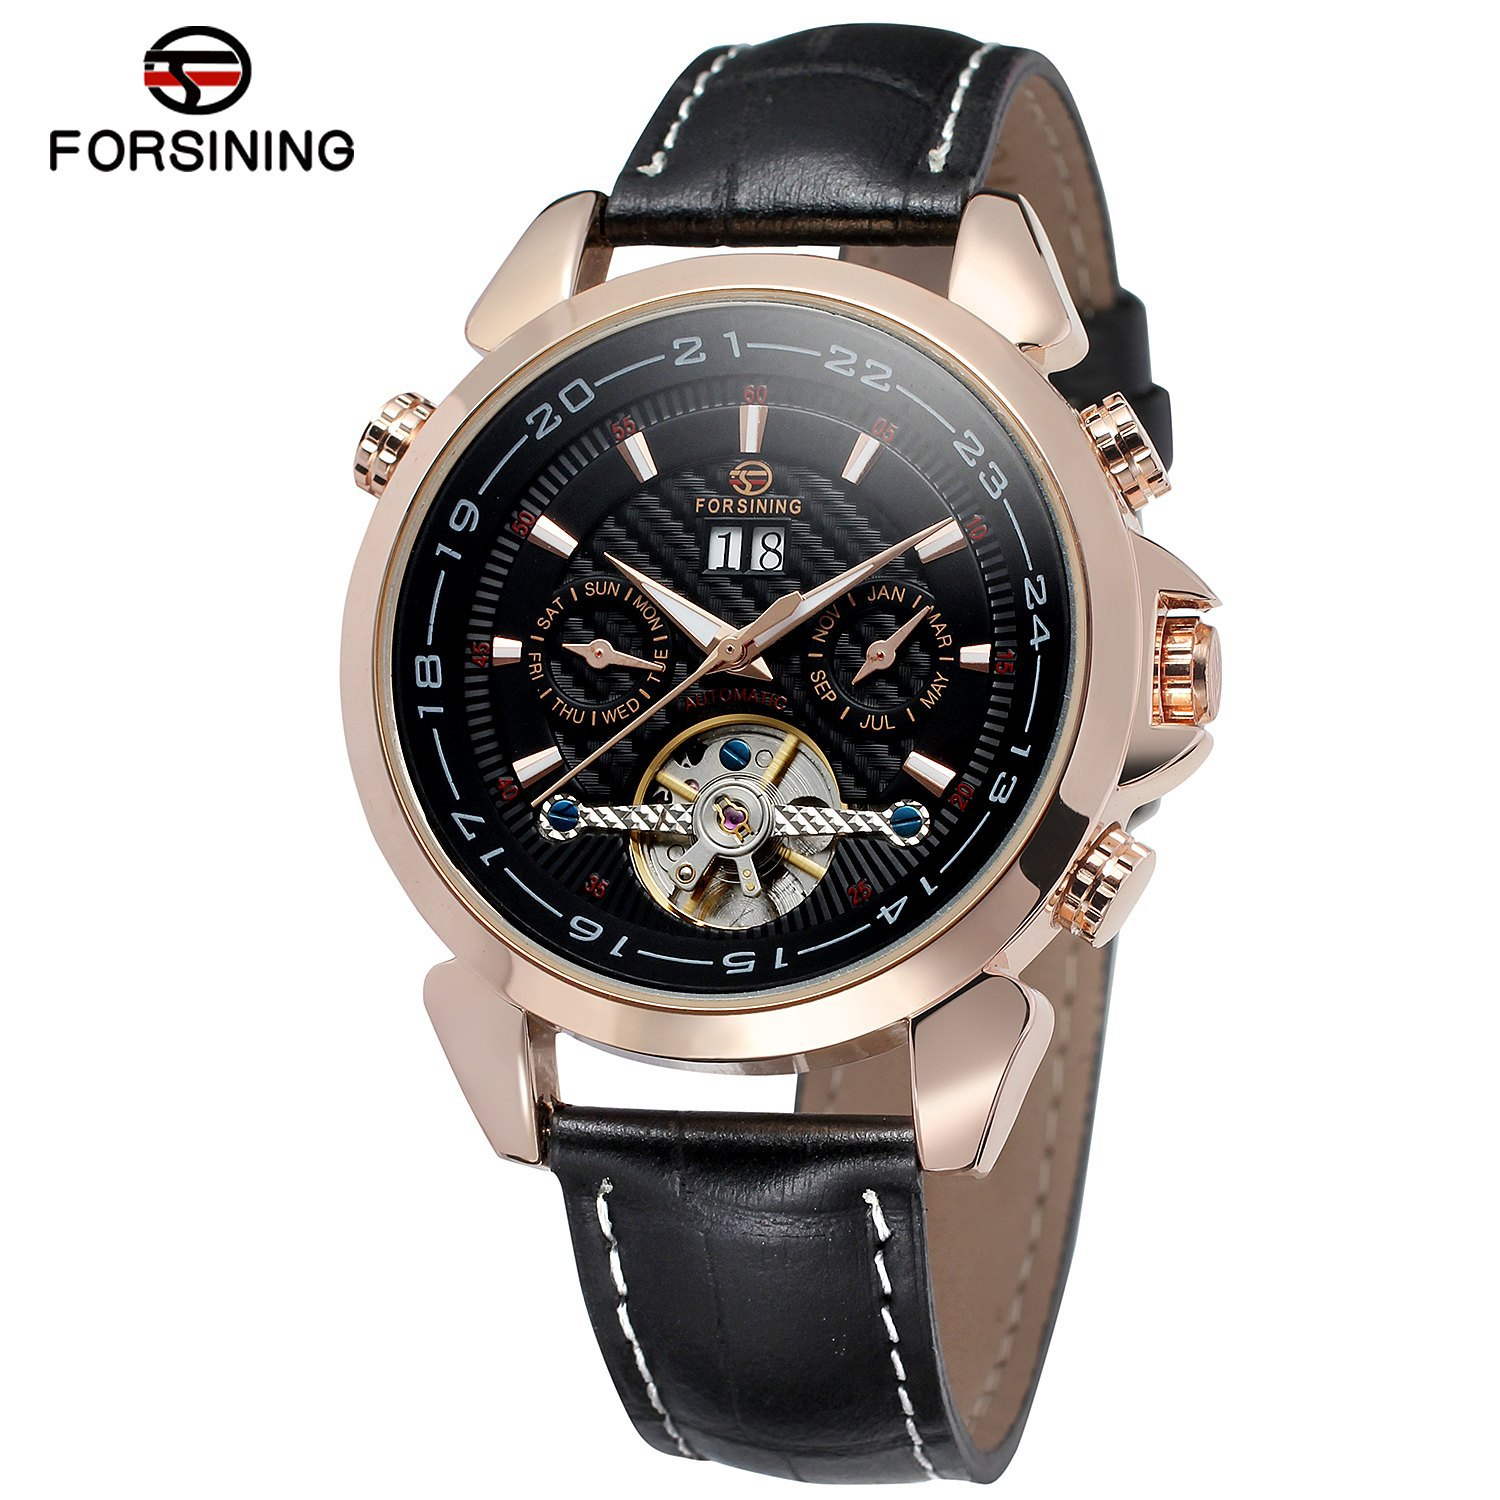 Forsining Luxury Tourbillon Mens Watch Automatic Mechanical Waterproof Leather Watches Top Designers Brands Stainless Steel HotForsining Luxury Tourbillon Mens Watch Automatic Mechanical Waterproof Leather Watches Top Designers Brands Stainless Steel Hot